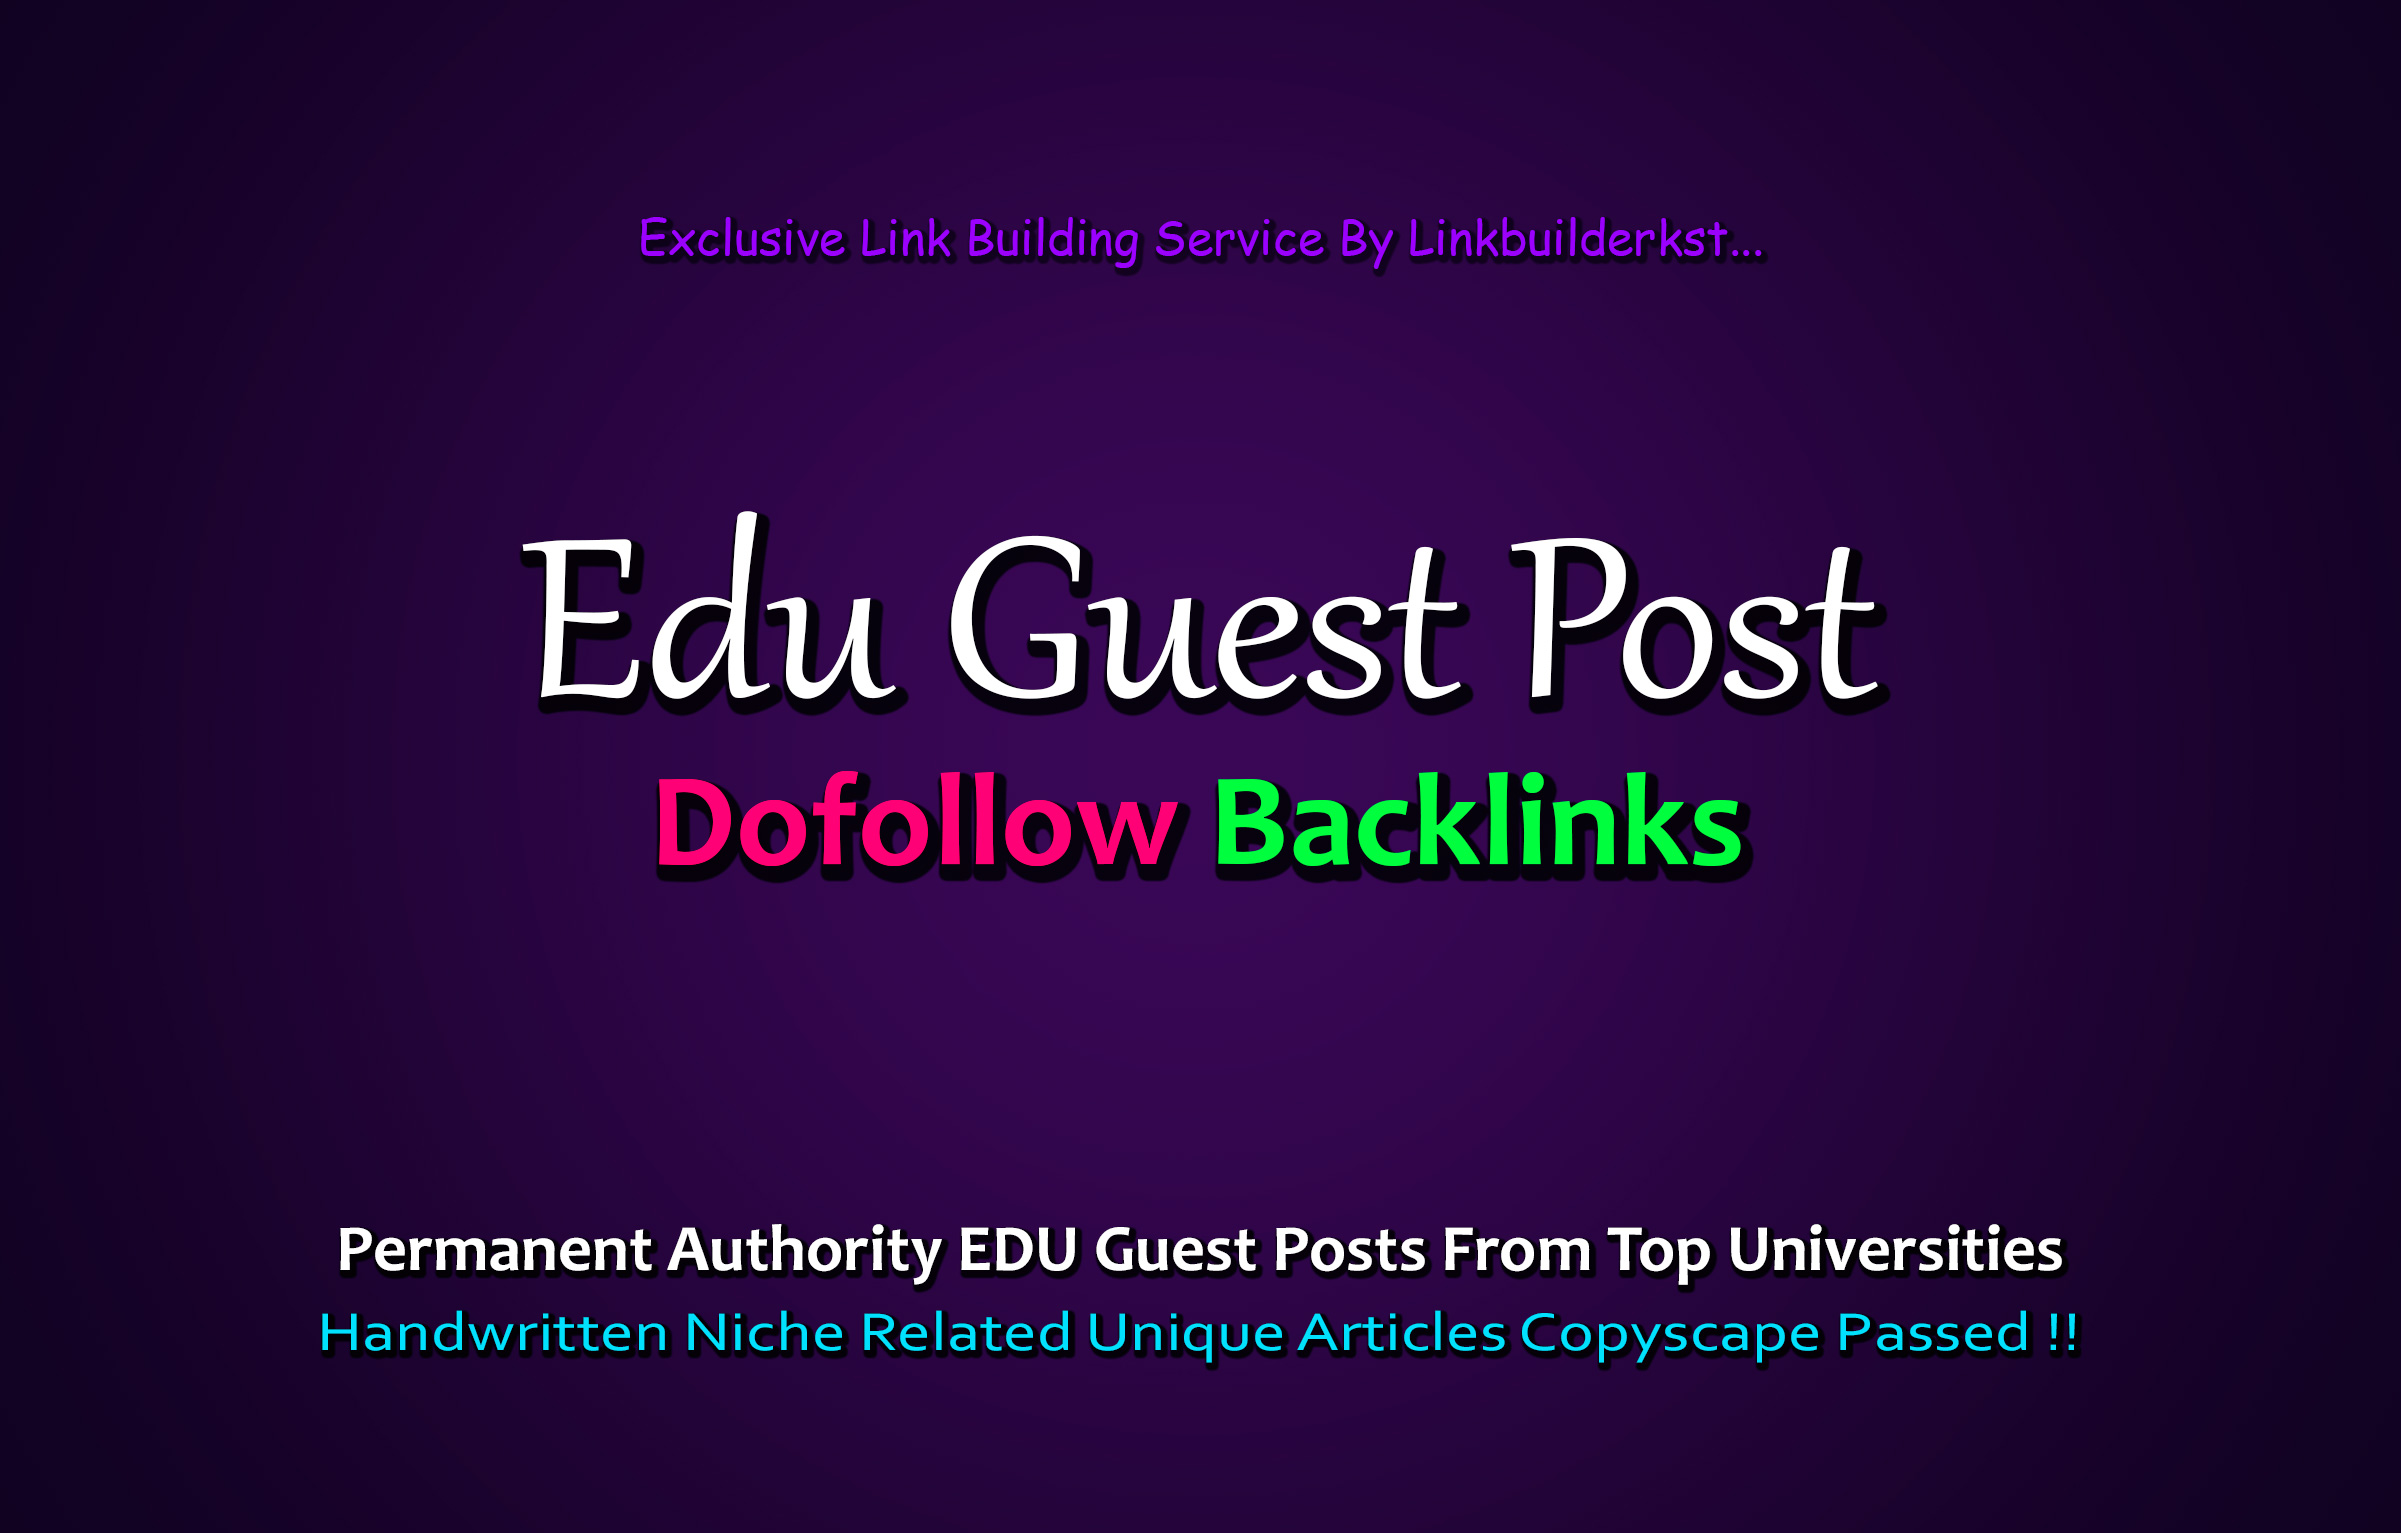 Get 2X EDU Guest Posts From Top Level Universities